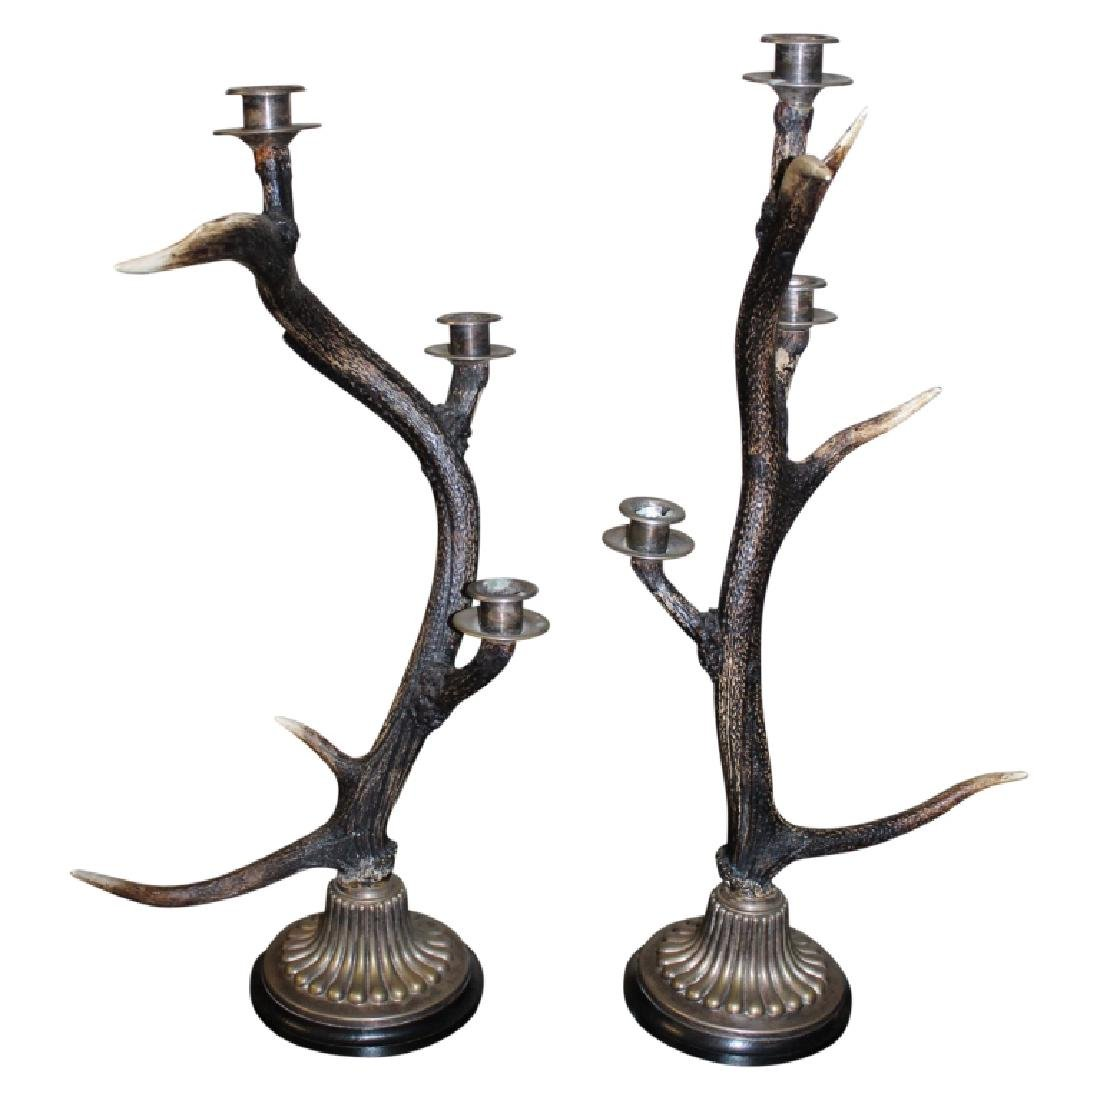 Pair of Antler Style Candlesticks w/ Silver Holders